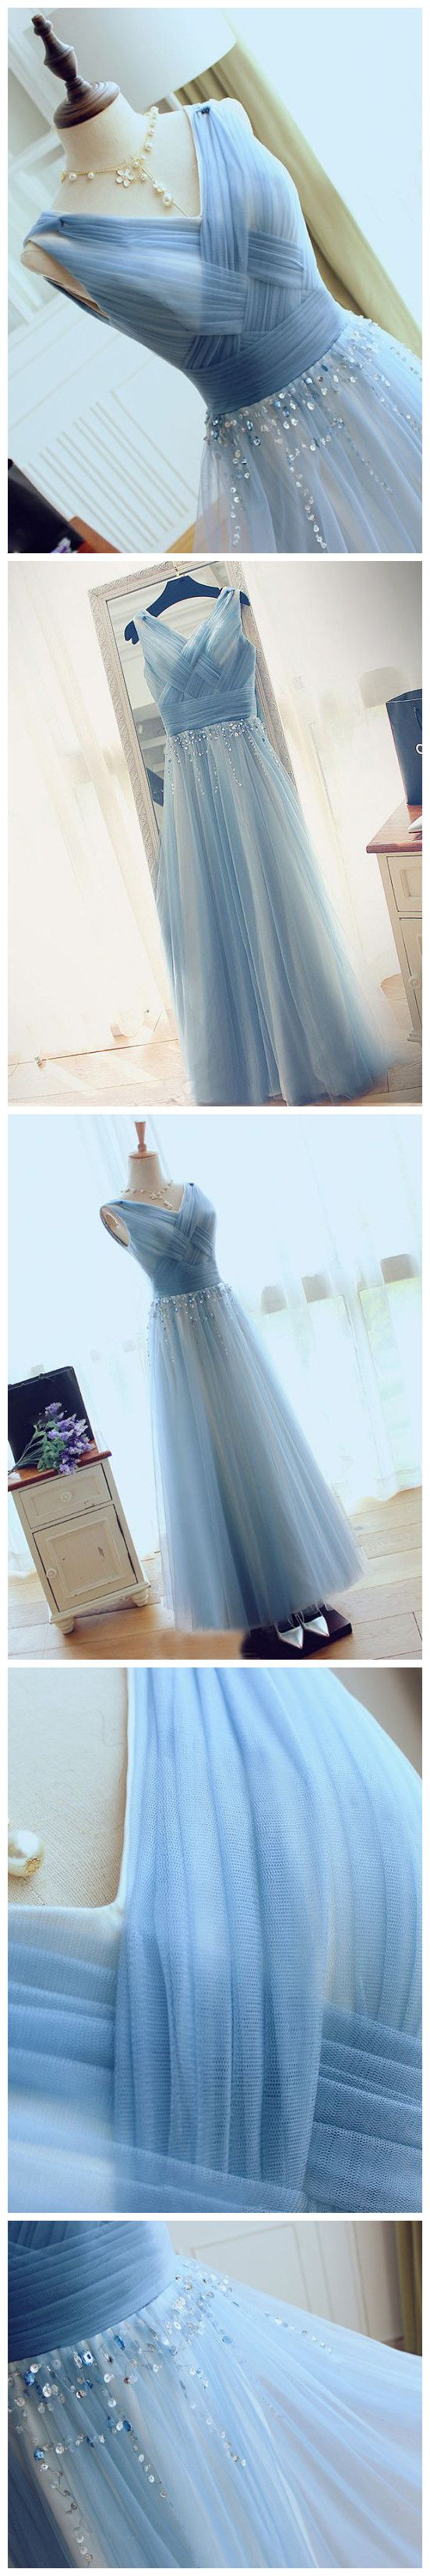 2017 Chic Prom Dress A-line V-neck Blue Tulle Cheap Evening Dress ...